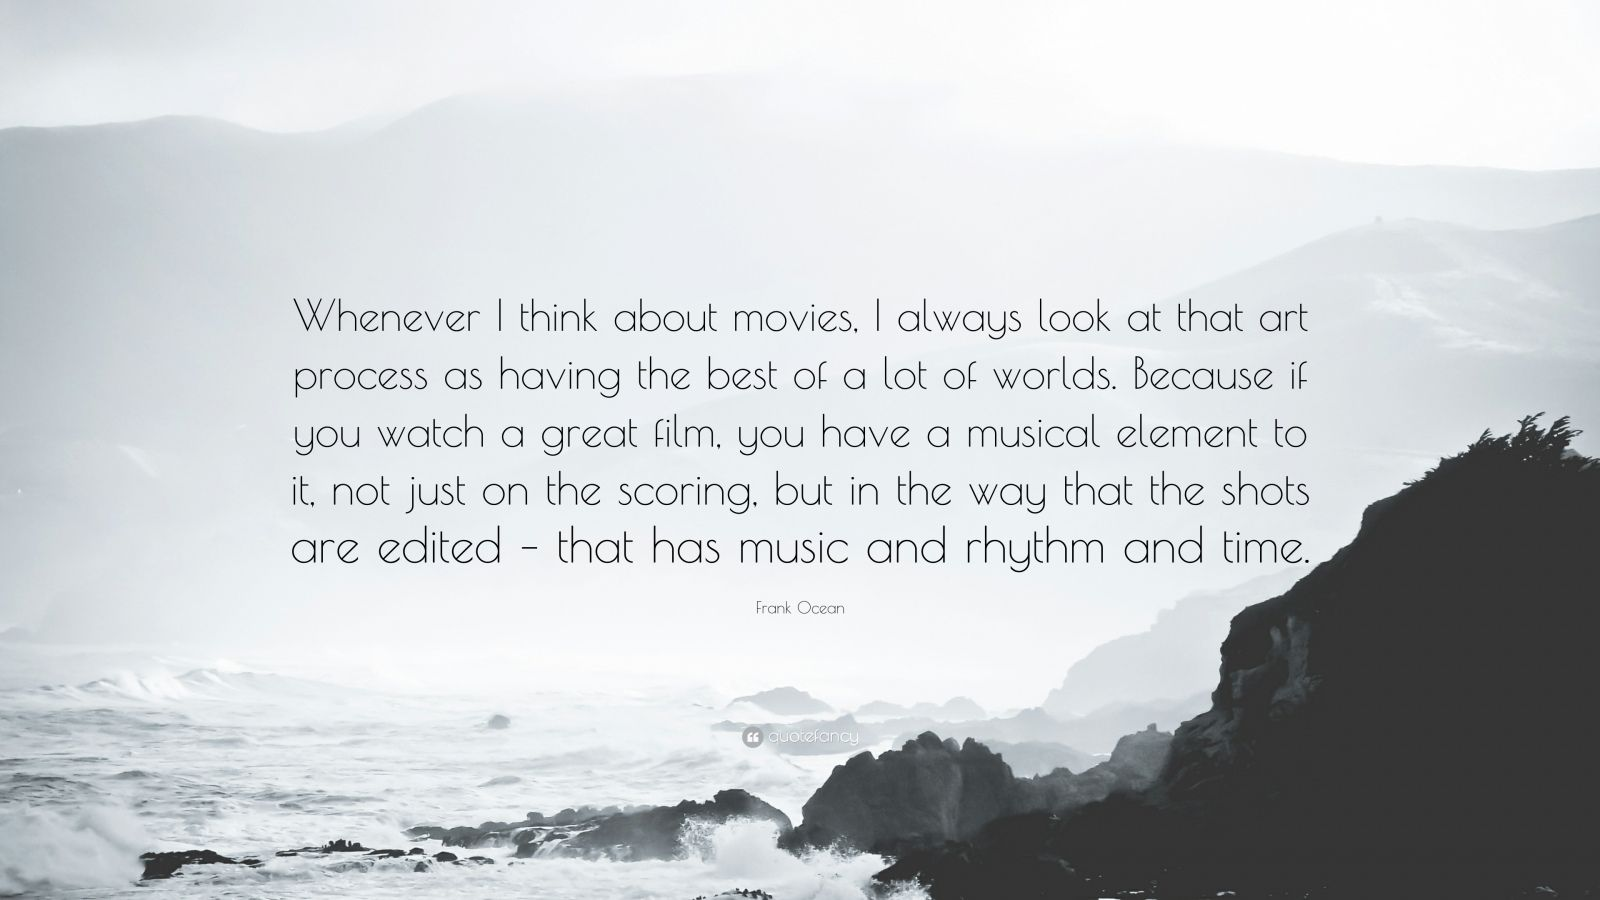 """Frank Ocean Quote: """"Whenever I think about movies, I always look at that art process as having the best of a lot of worlds. Because if you watch a great film, you have a musical element to it, not just on the scoring, but in the way that the shots are edited – that has music and rhythm and time."""""""